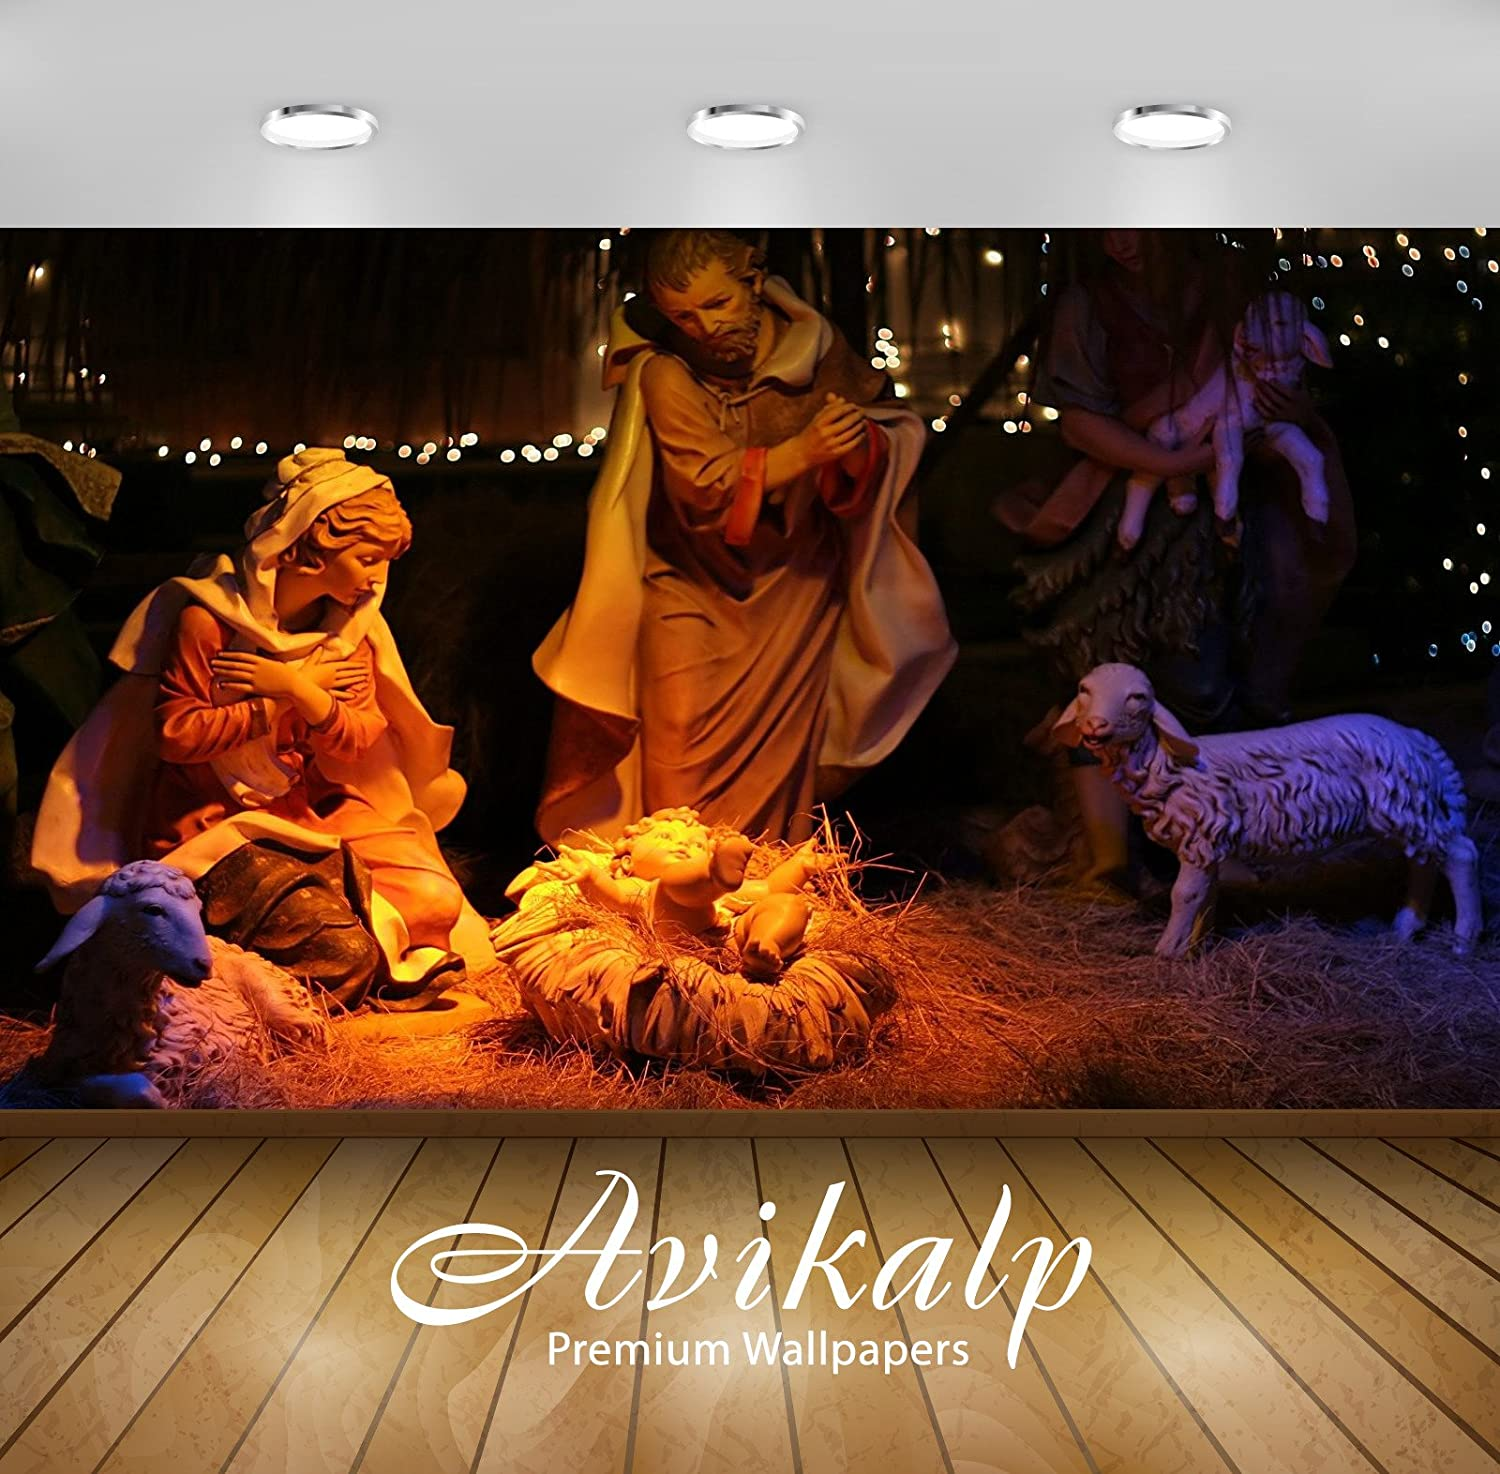 Avikalp Exclusive Awi2498 Christmas Eve The Birth Of Jesus